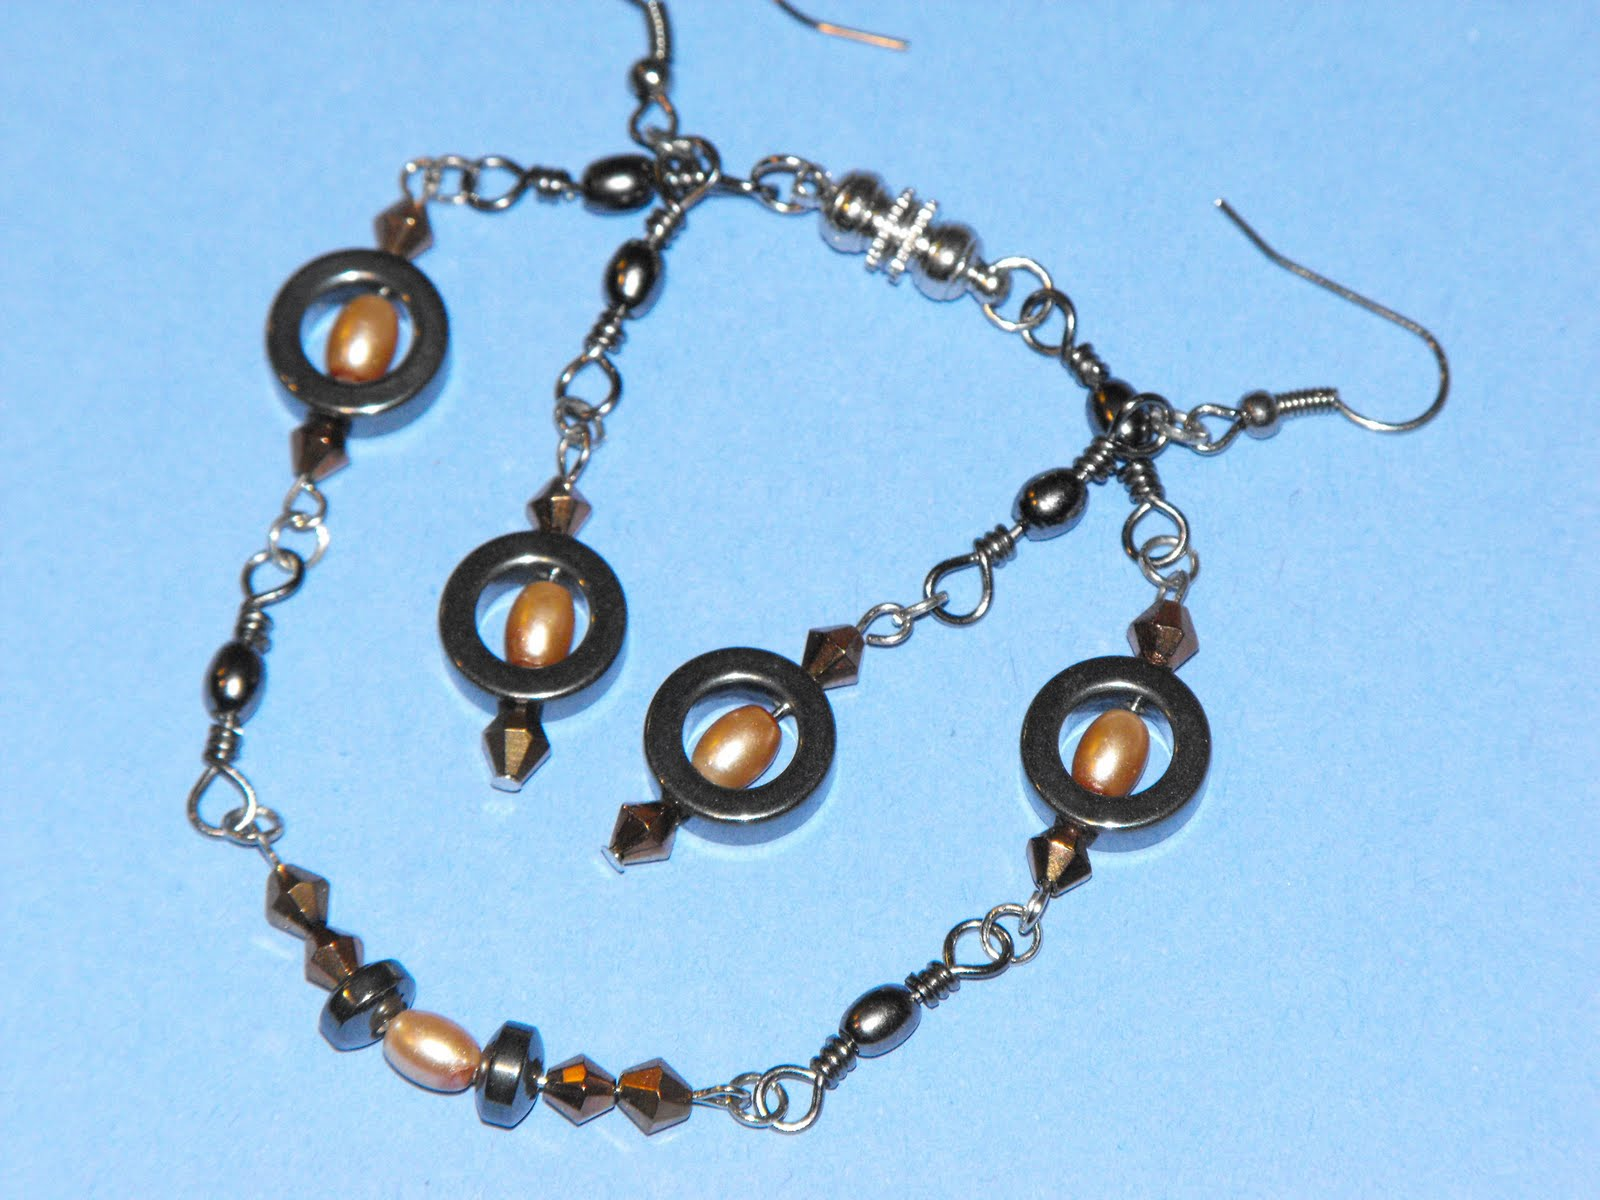 Kreations Done By Hand Upcycled Fishing Swivel Bracelet And